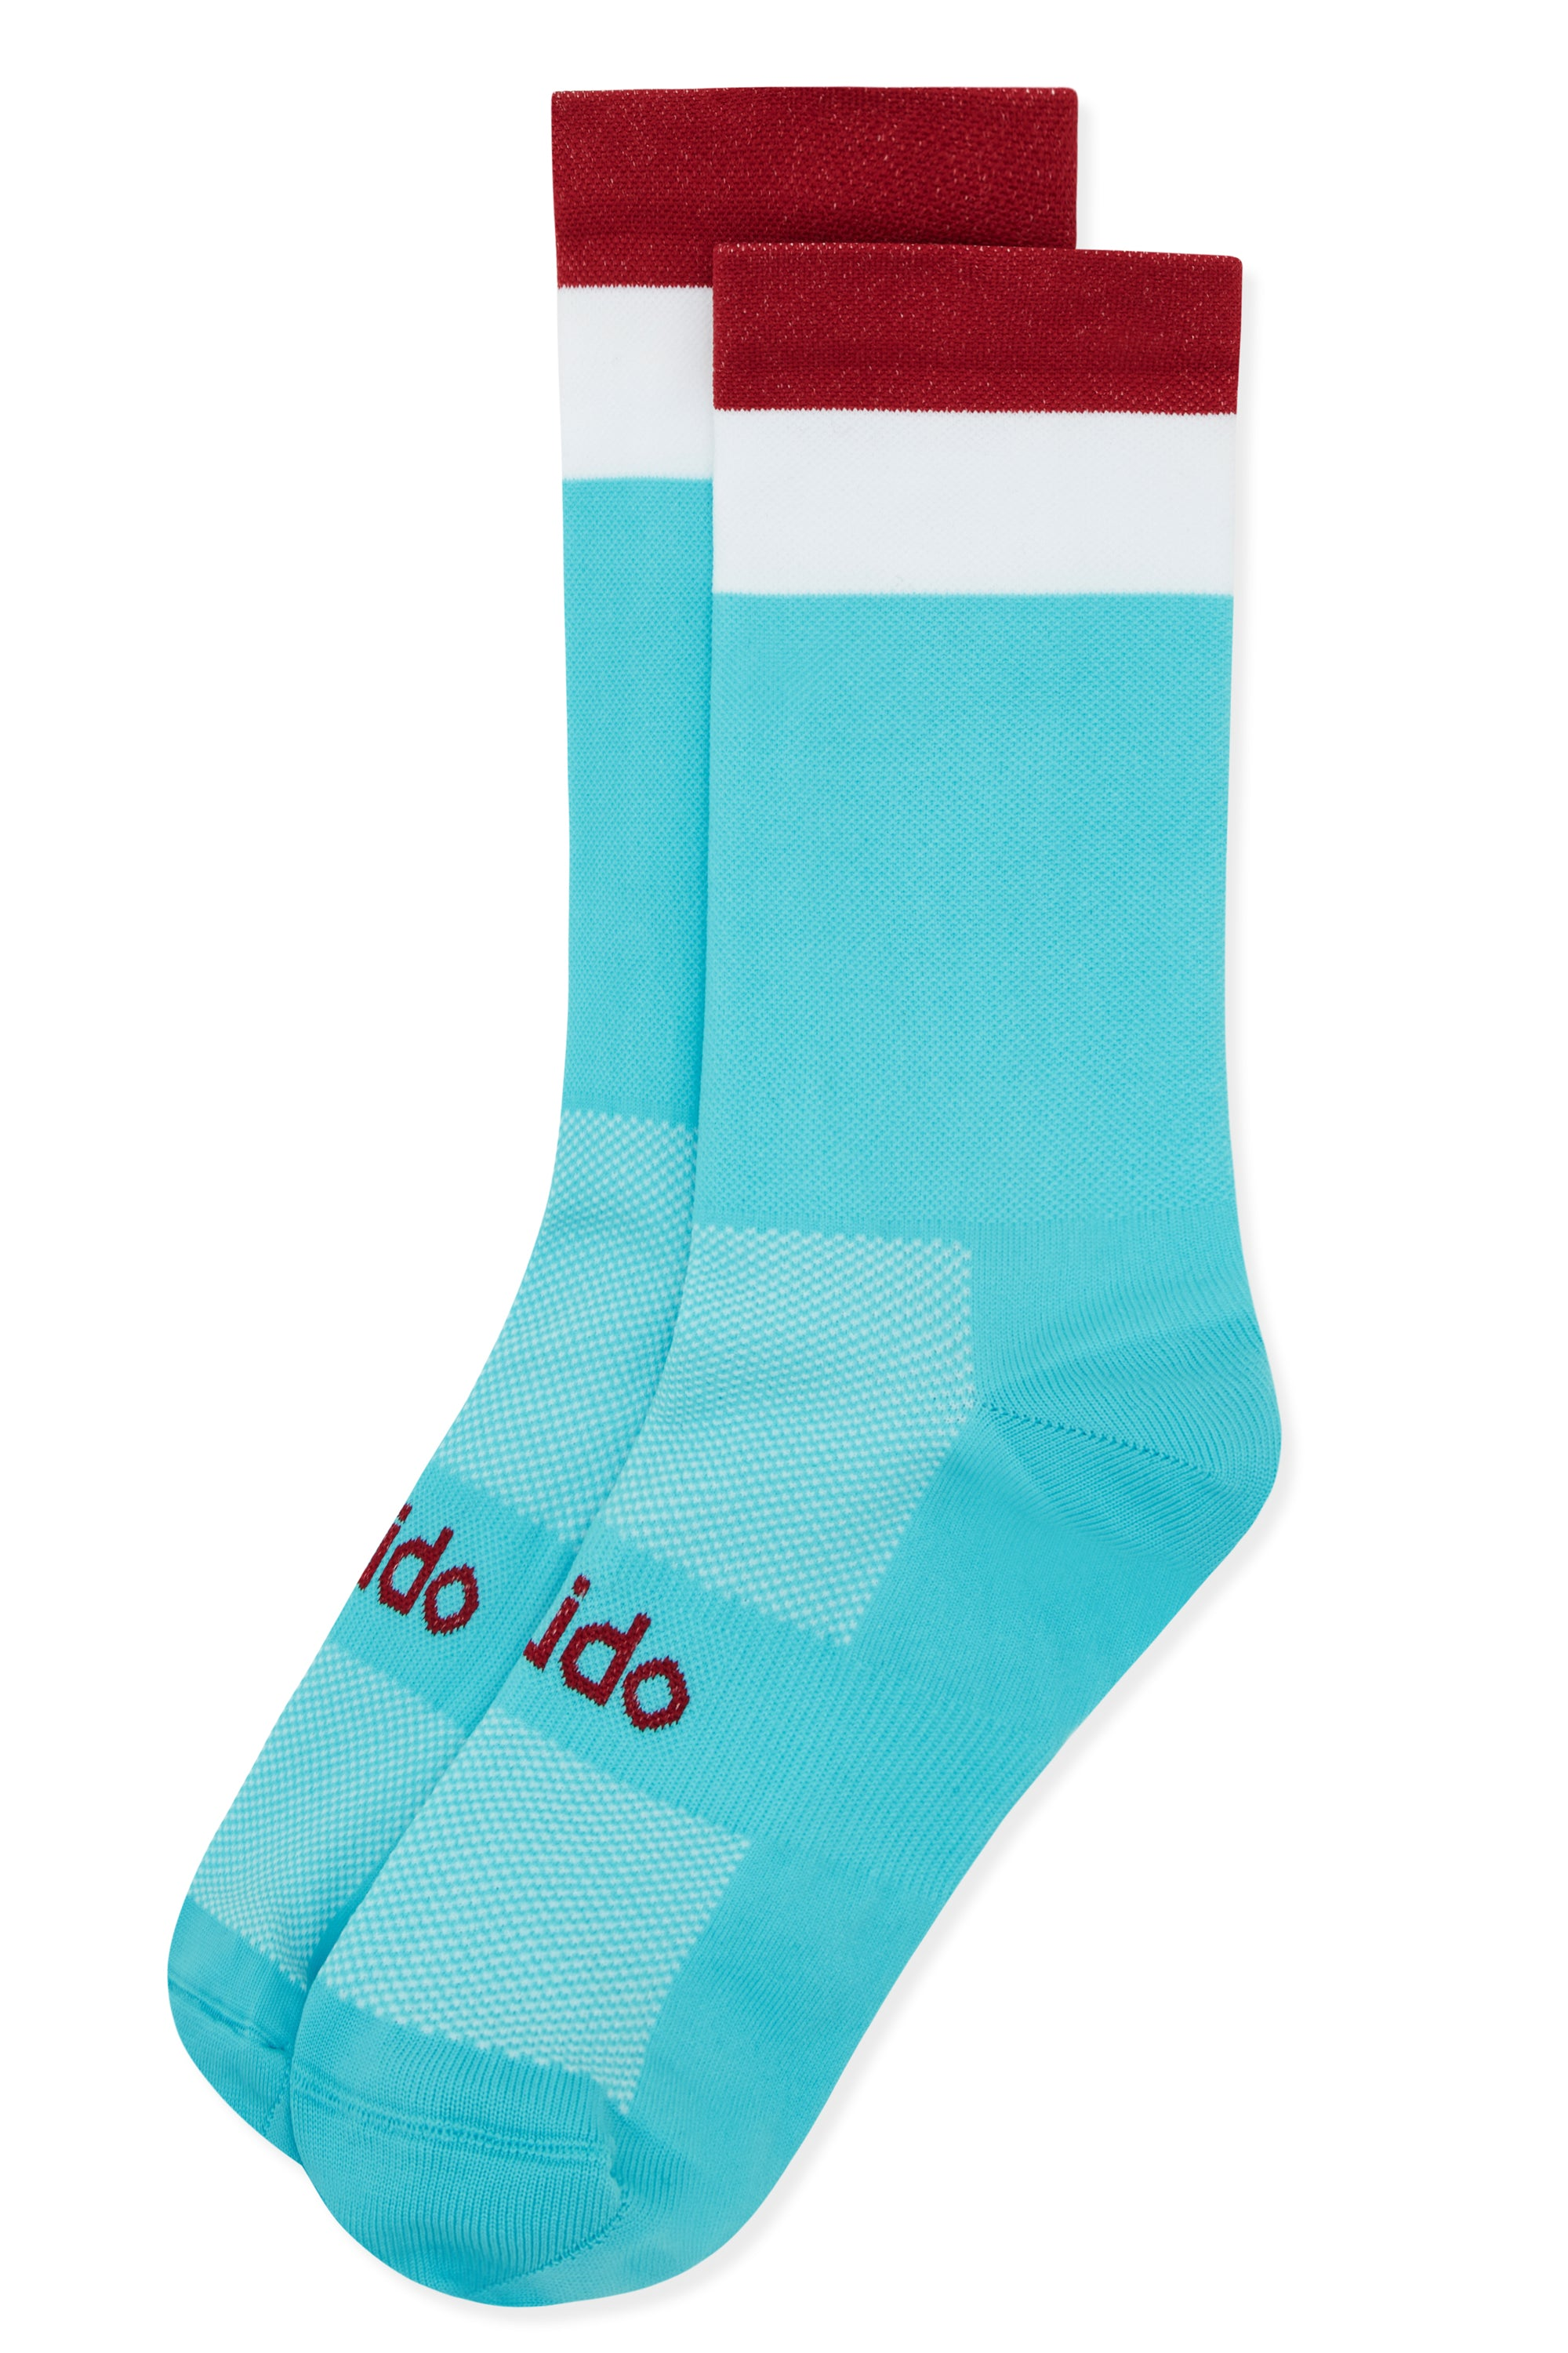 Blue & white cycling socks